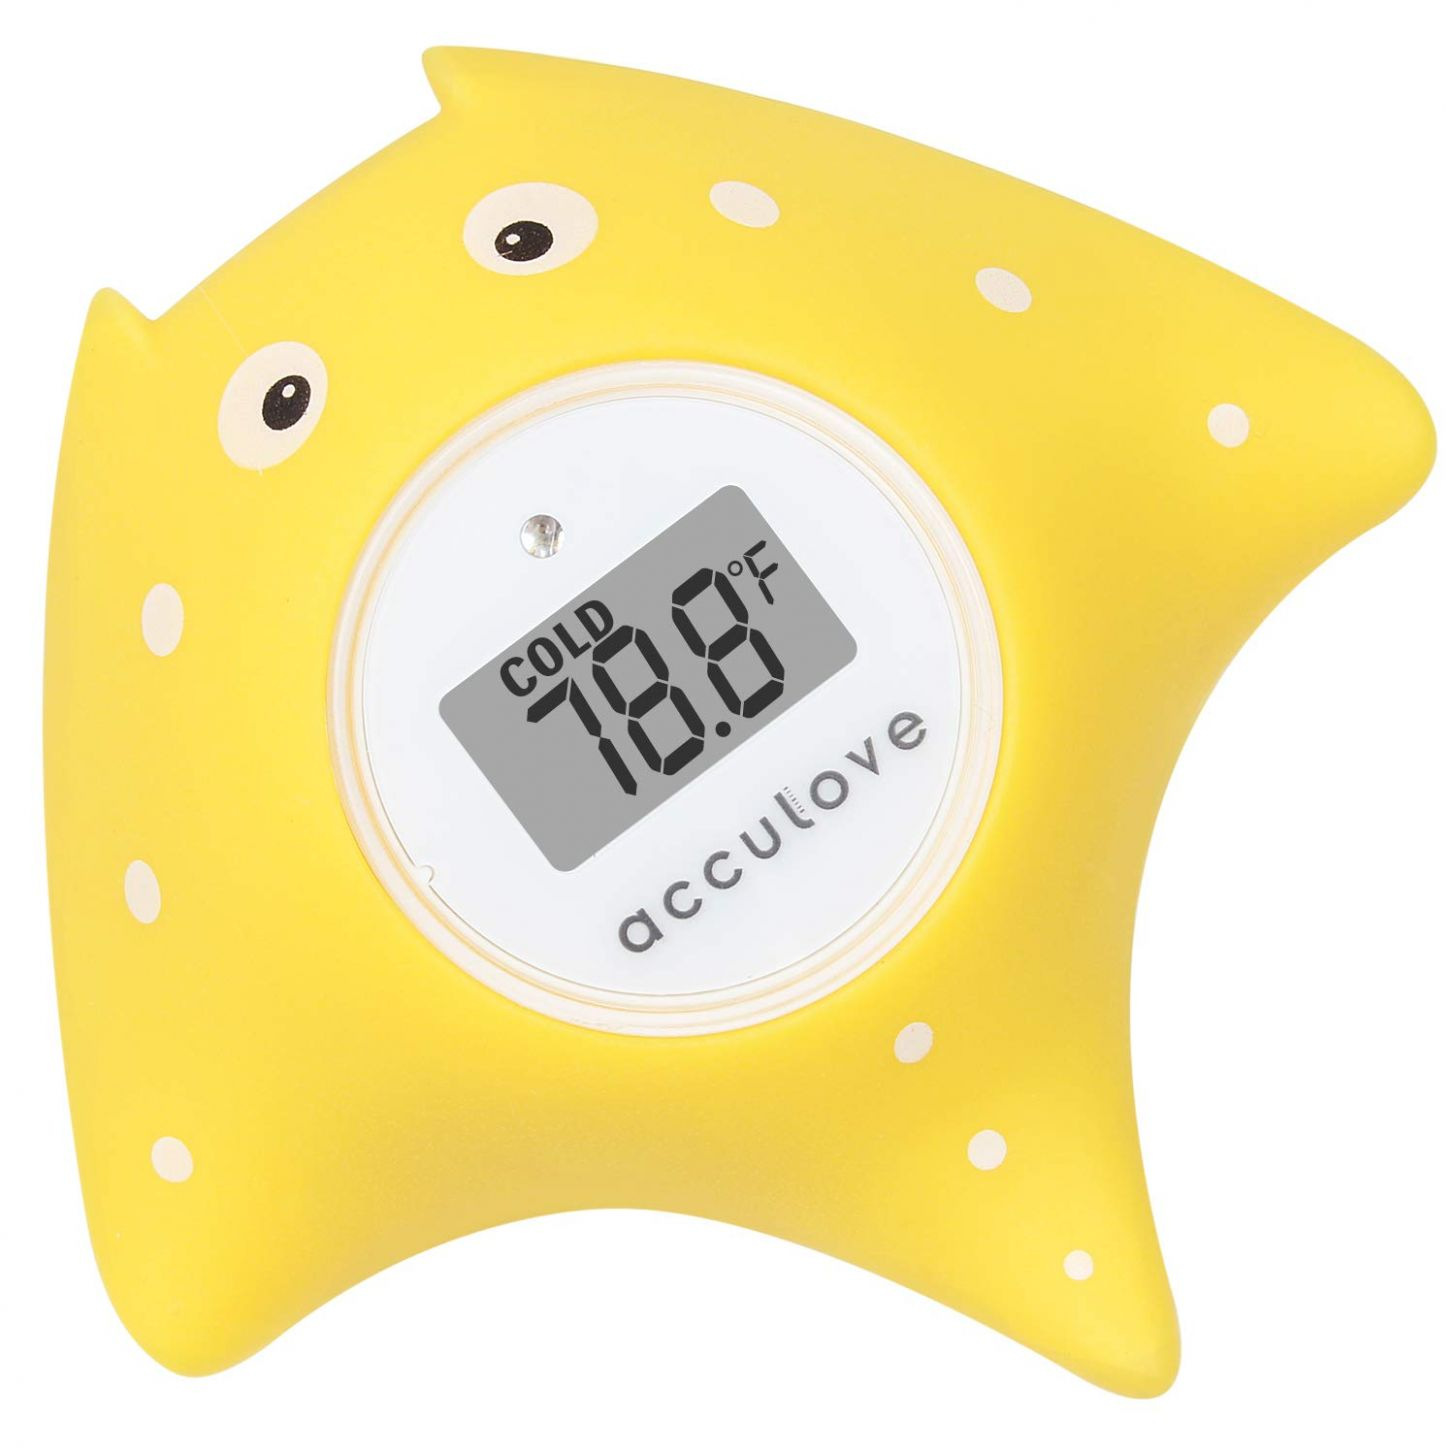 Acculove Baby Bath Thermometer,Room Thermometer, Baby Safe Floating Bath  Thermometer for Bathtub and Swimming Pool, Yellow Fish Cartoon Shape, Safe  ..